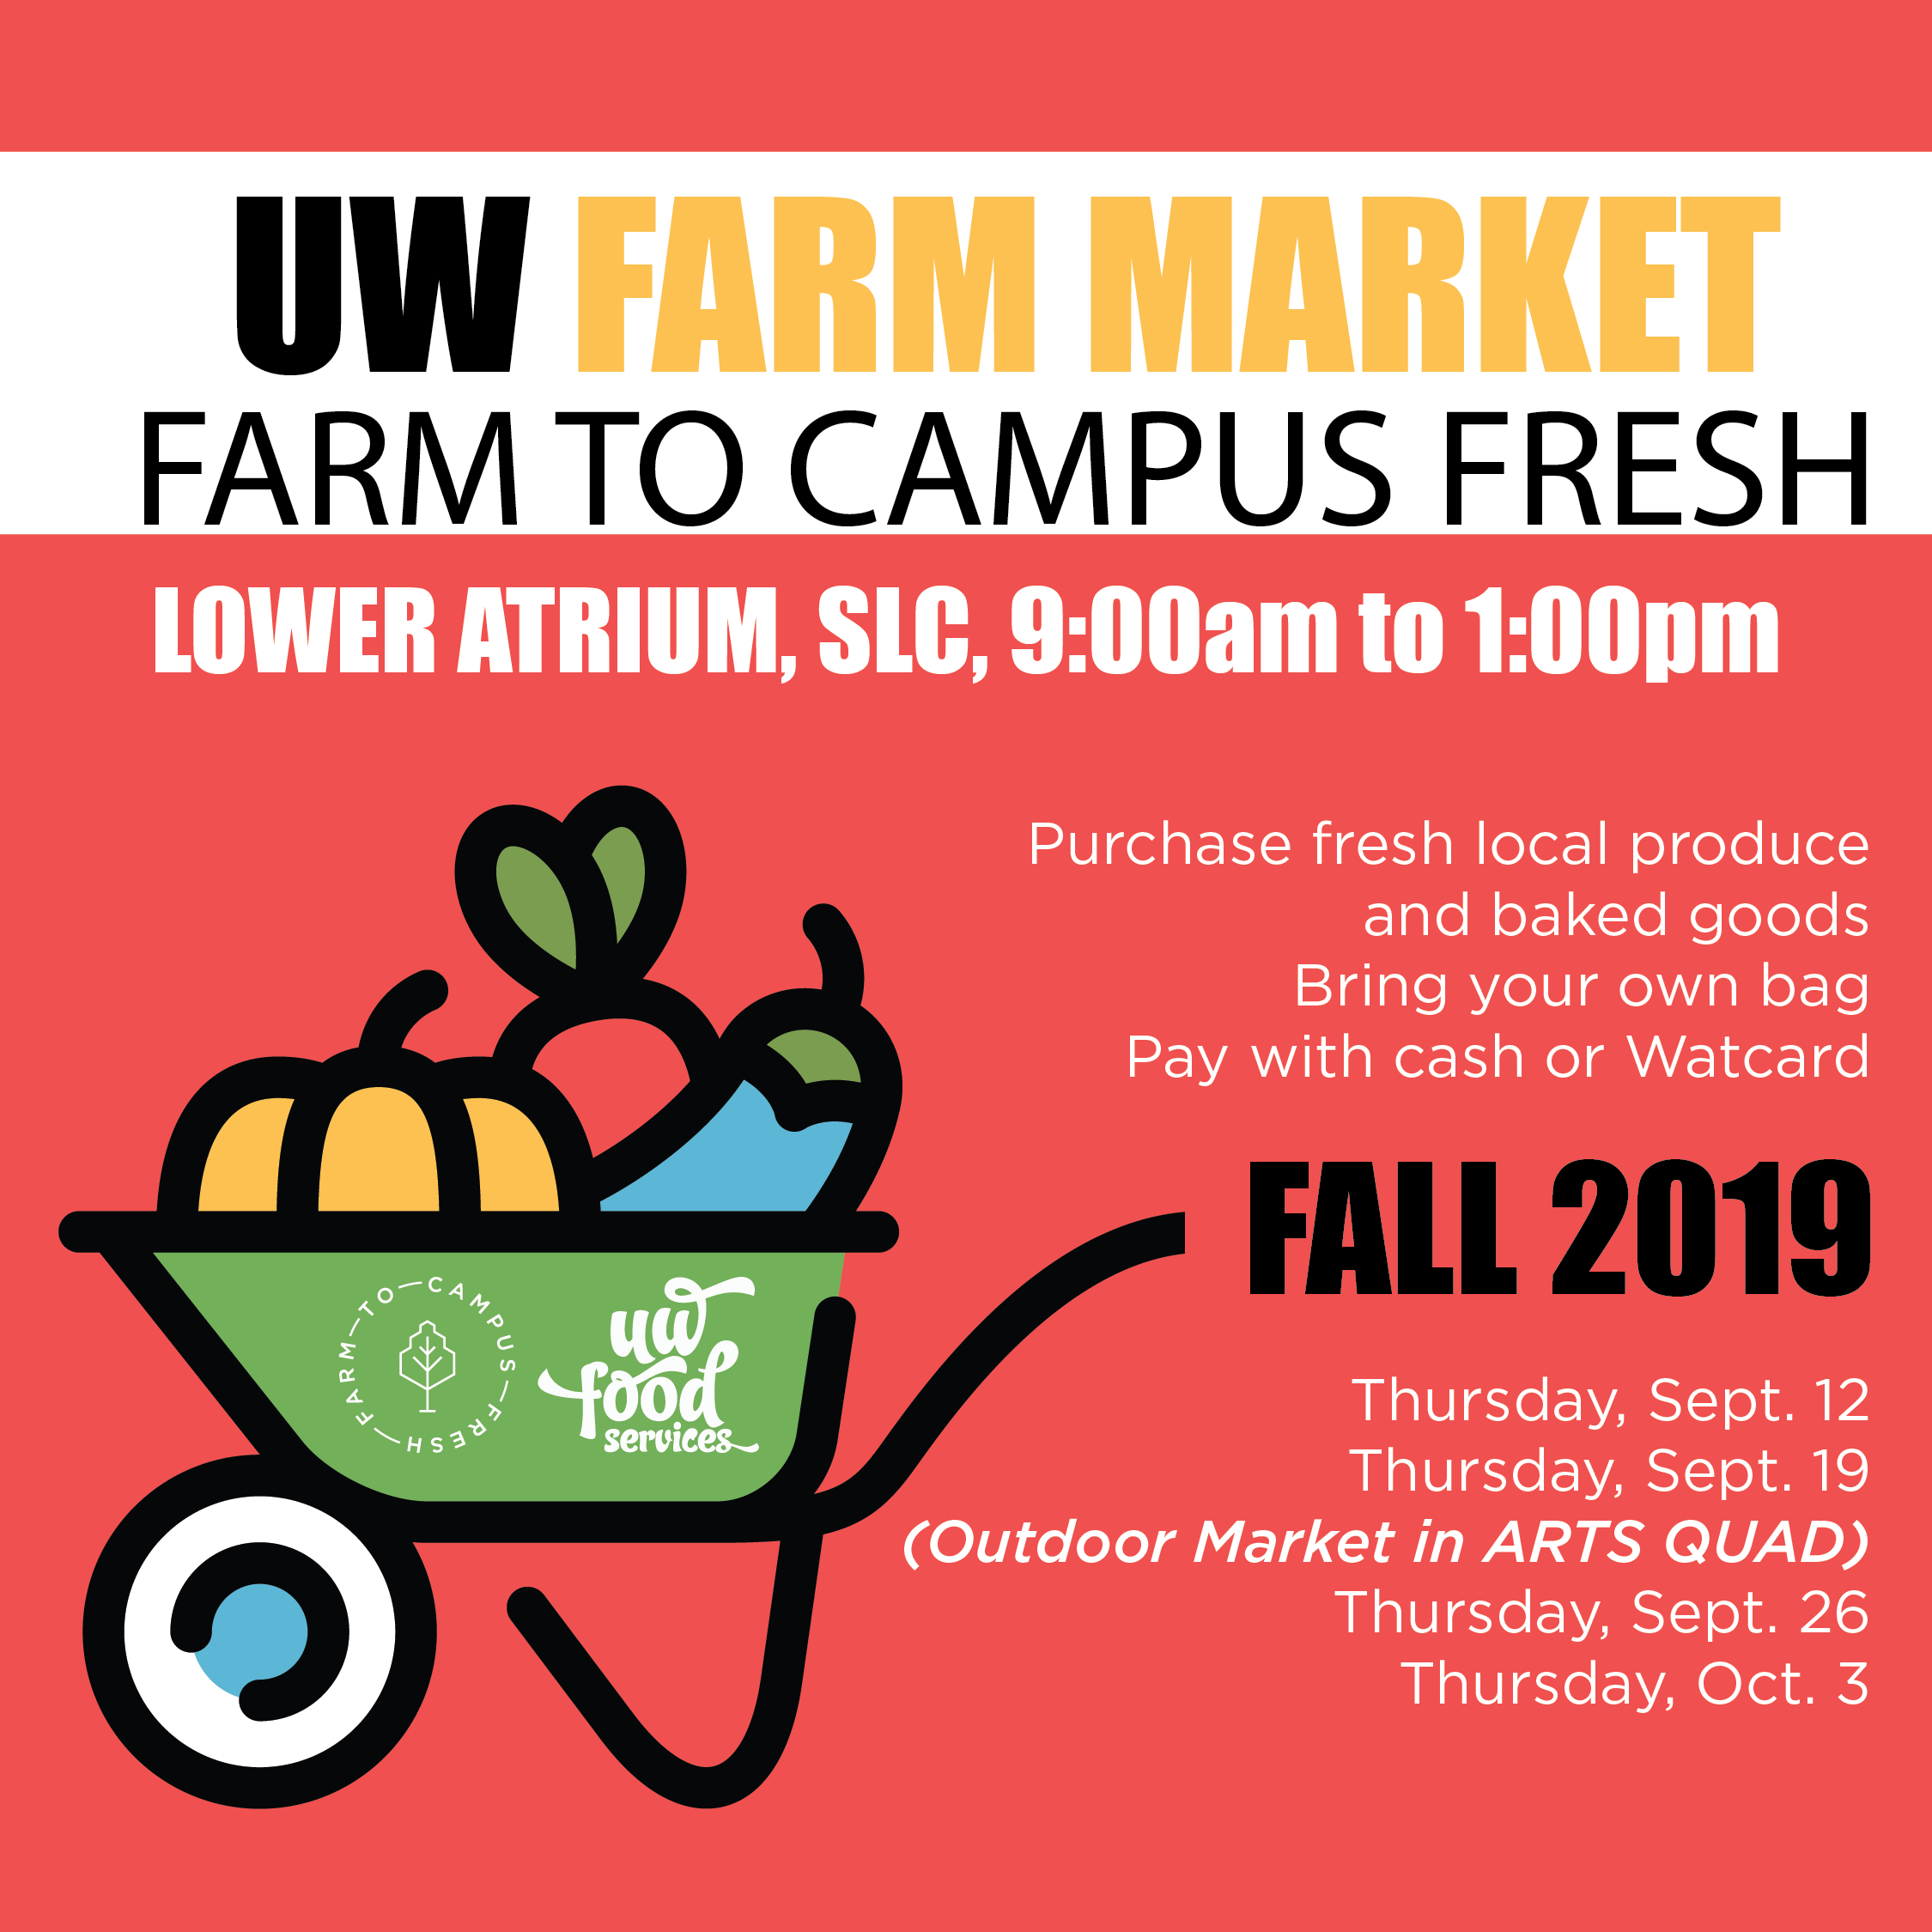 UW Farm Market FARM TO CAMPUS FRESH Lower Atrium, SLC 9:00am to 1:00pm Fall 2019